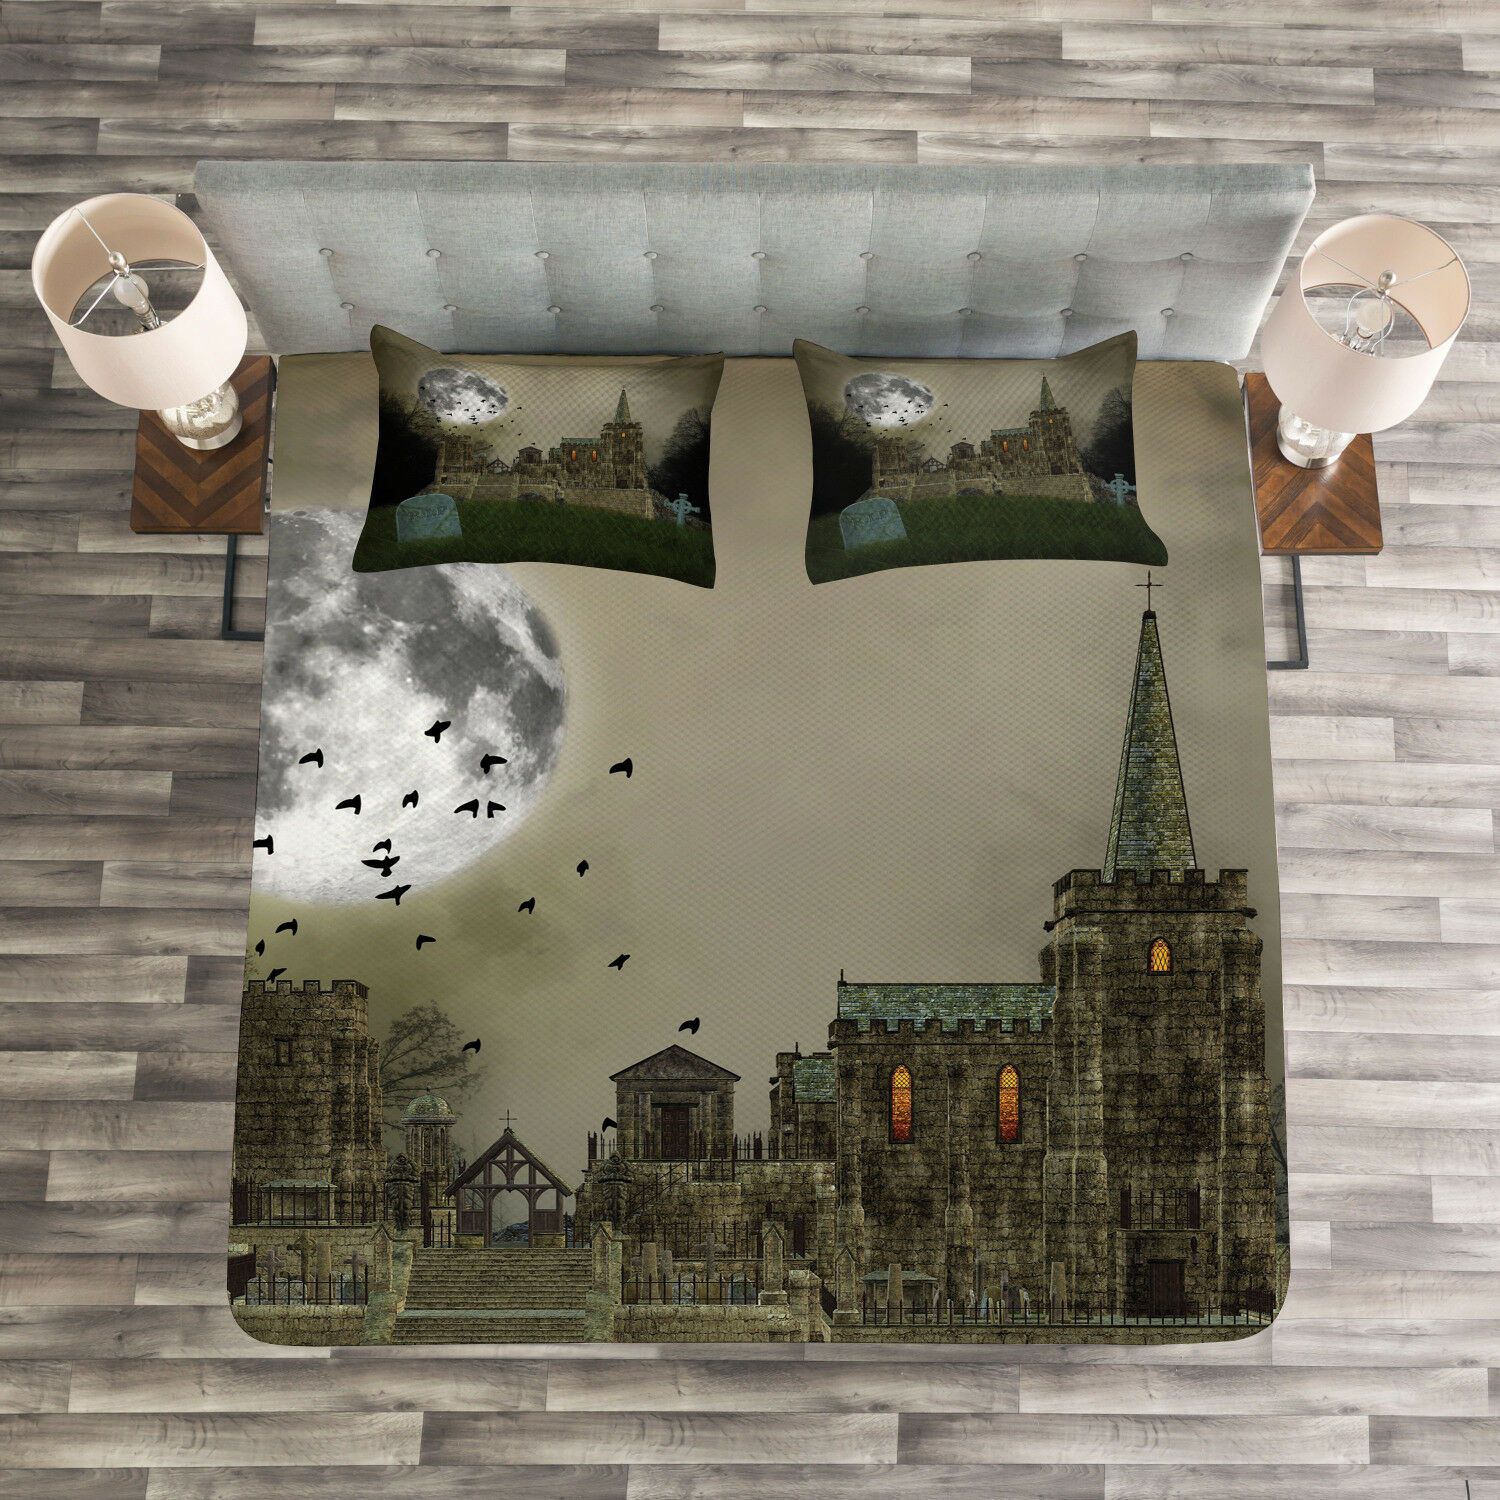 Gothic Quilted Bedspread & Pillow Shams Set, Old Village and Grave Print